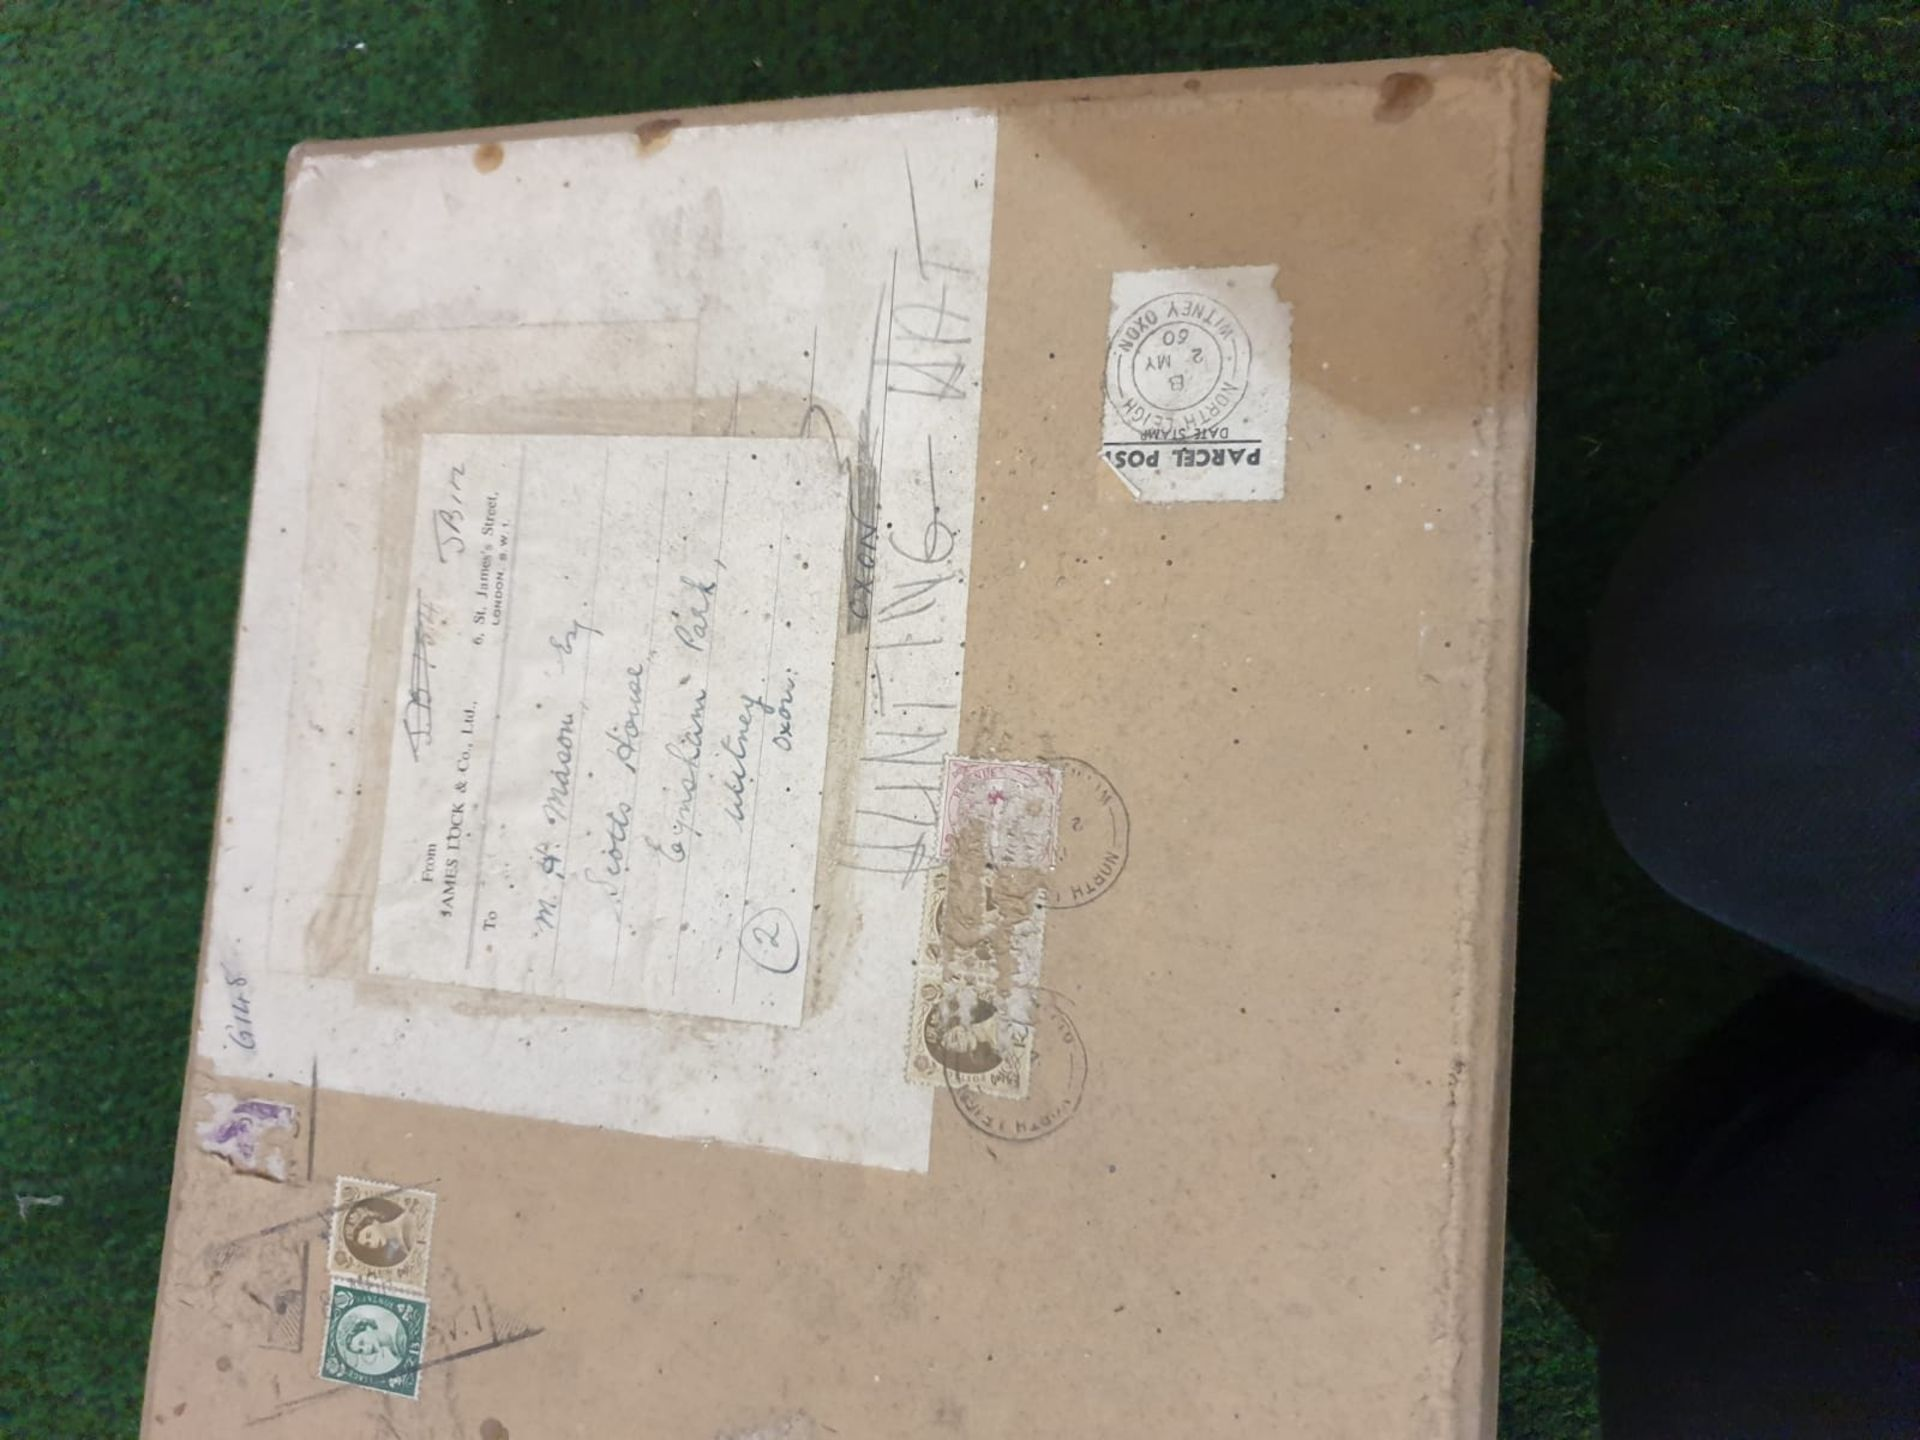 A James Lock + Co. Silk Black Top hat with original card box - Image 4 of 5